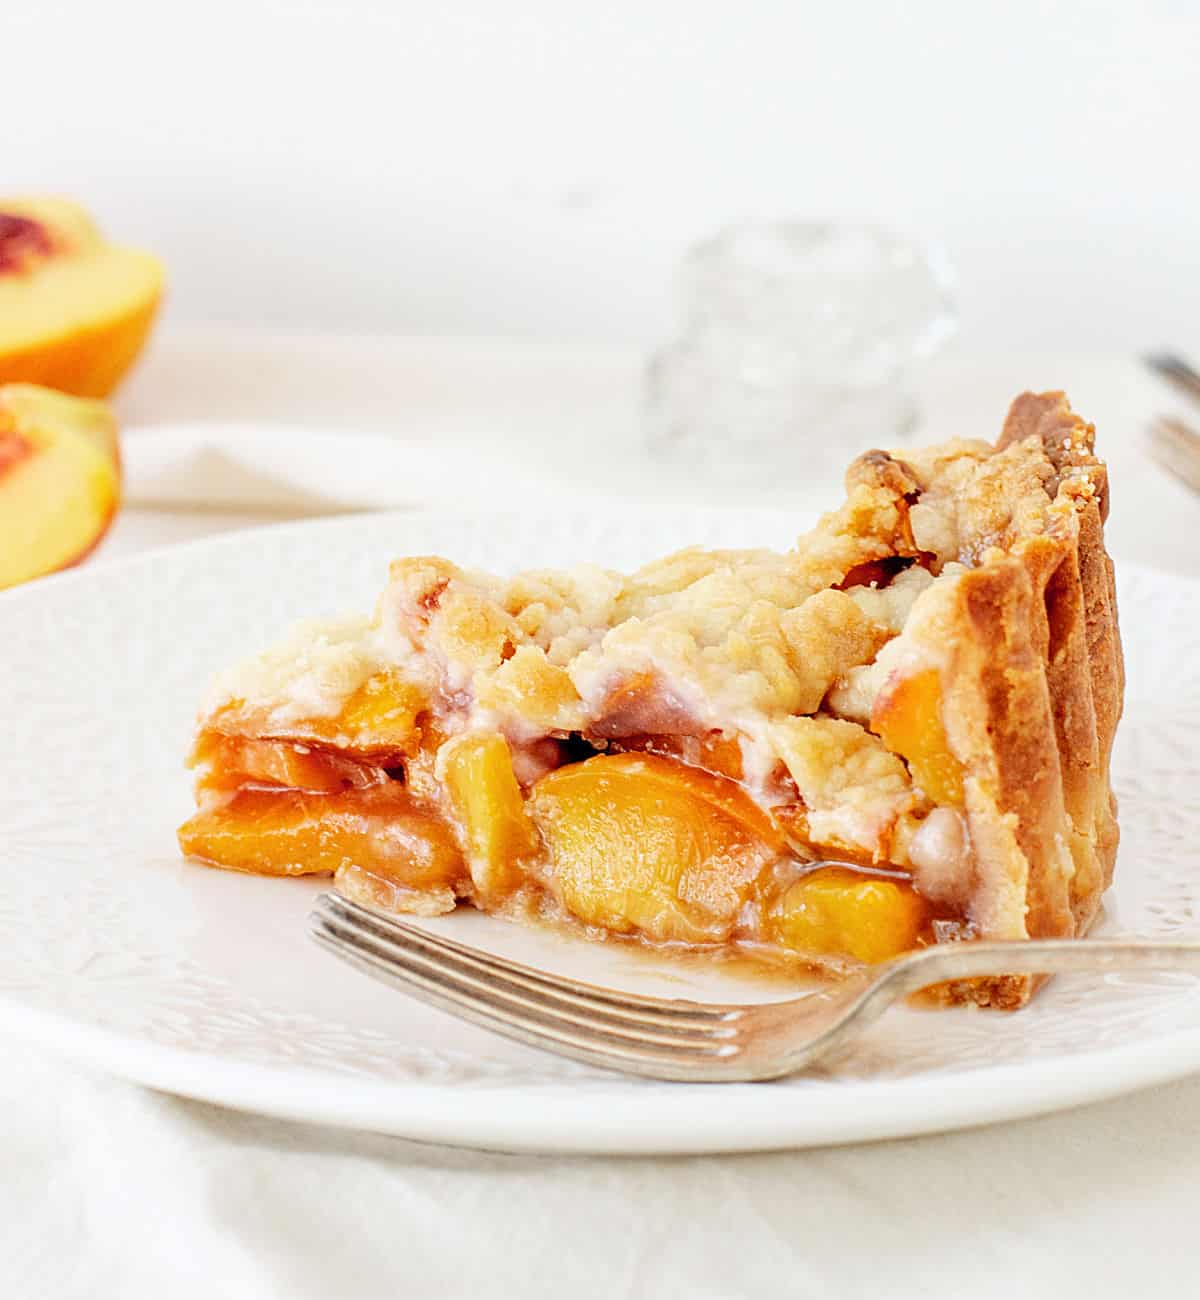 Slice of peach crumb pie on white plate, white background